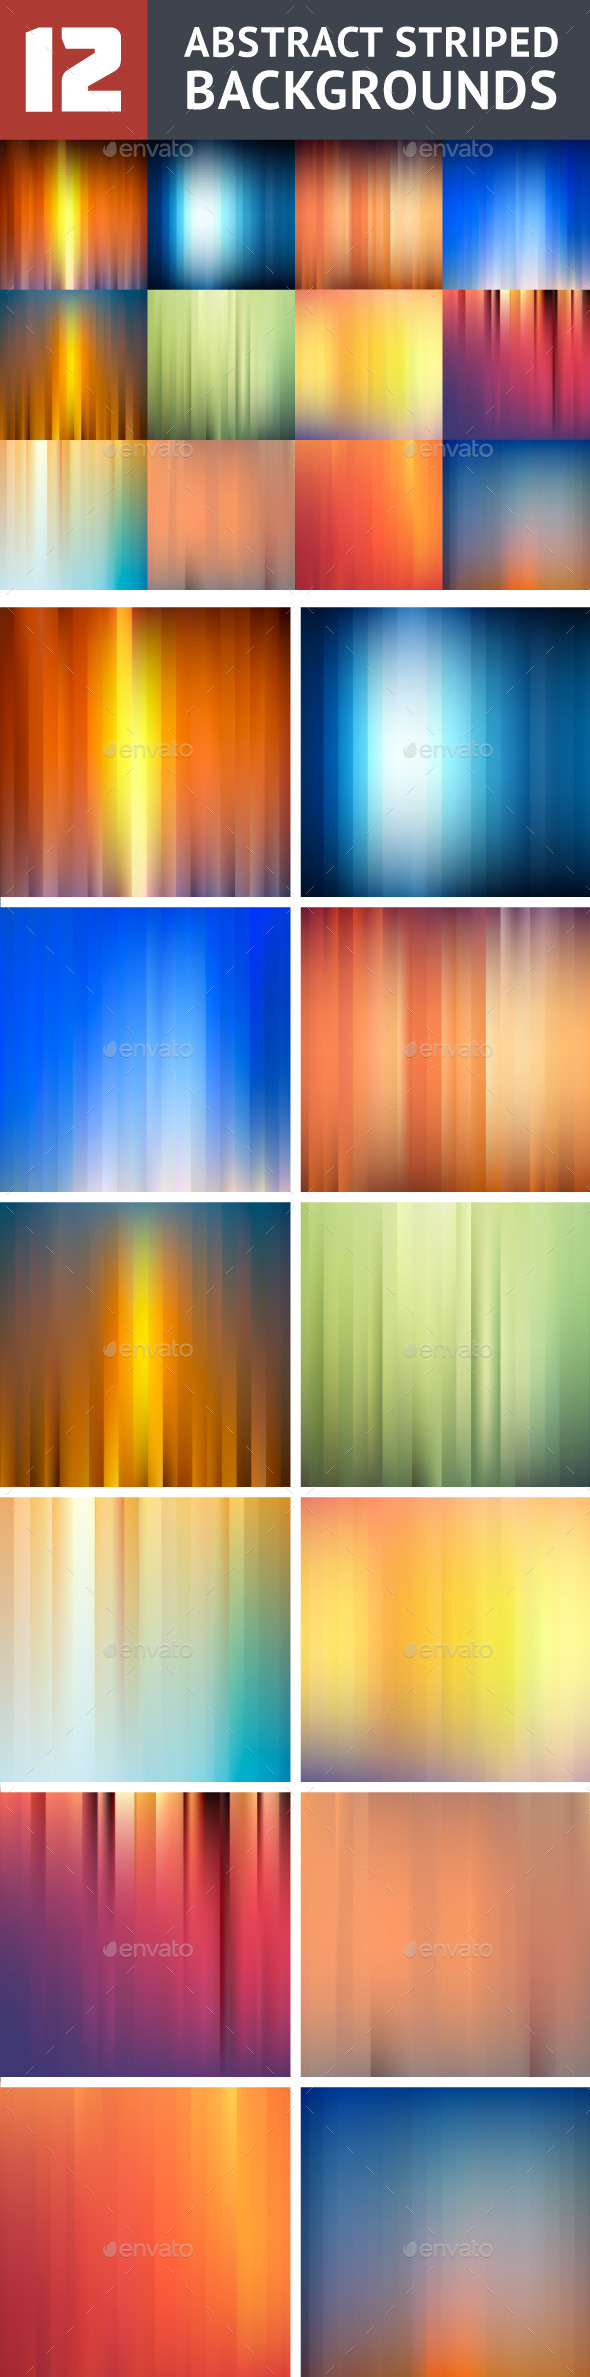 12 Striped Backgrounds - Backgrounds Decorative